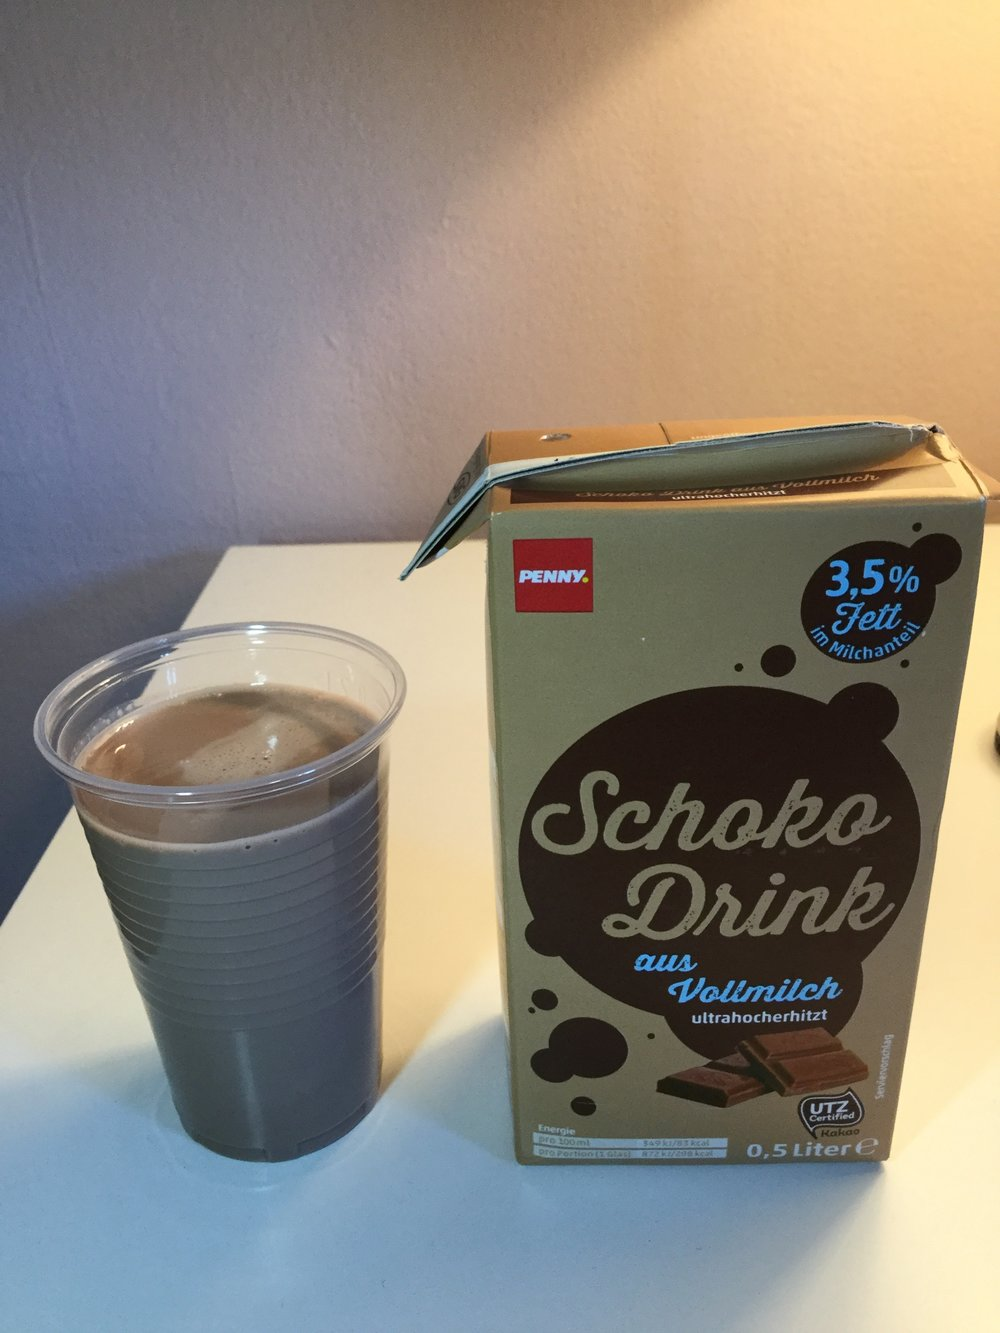 Penny Schoko Drink (Whole) Cup